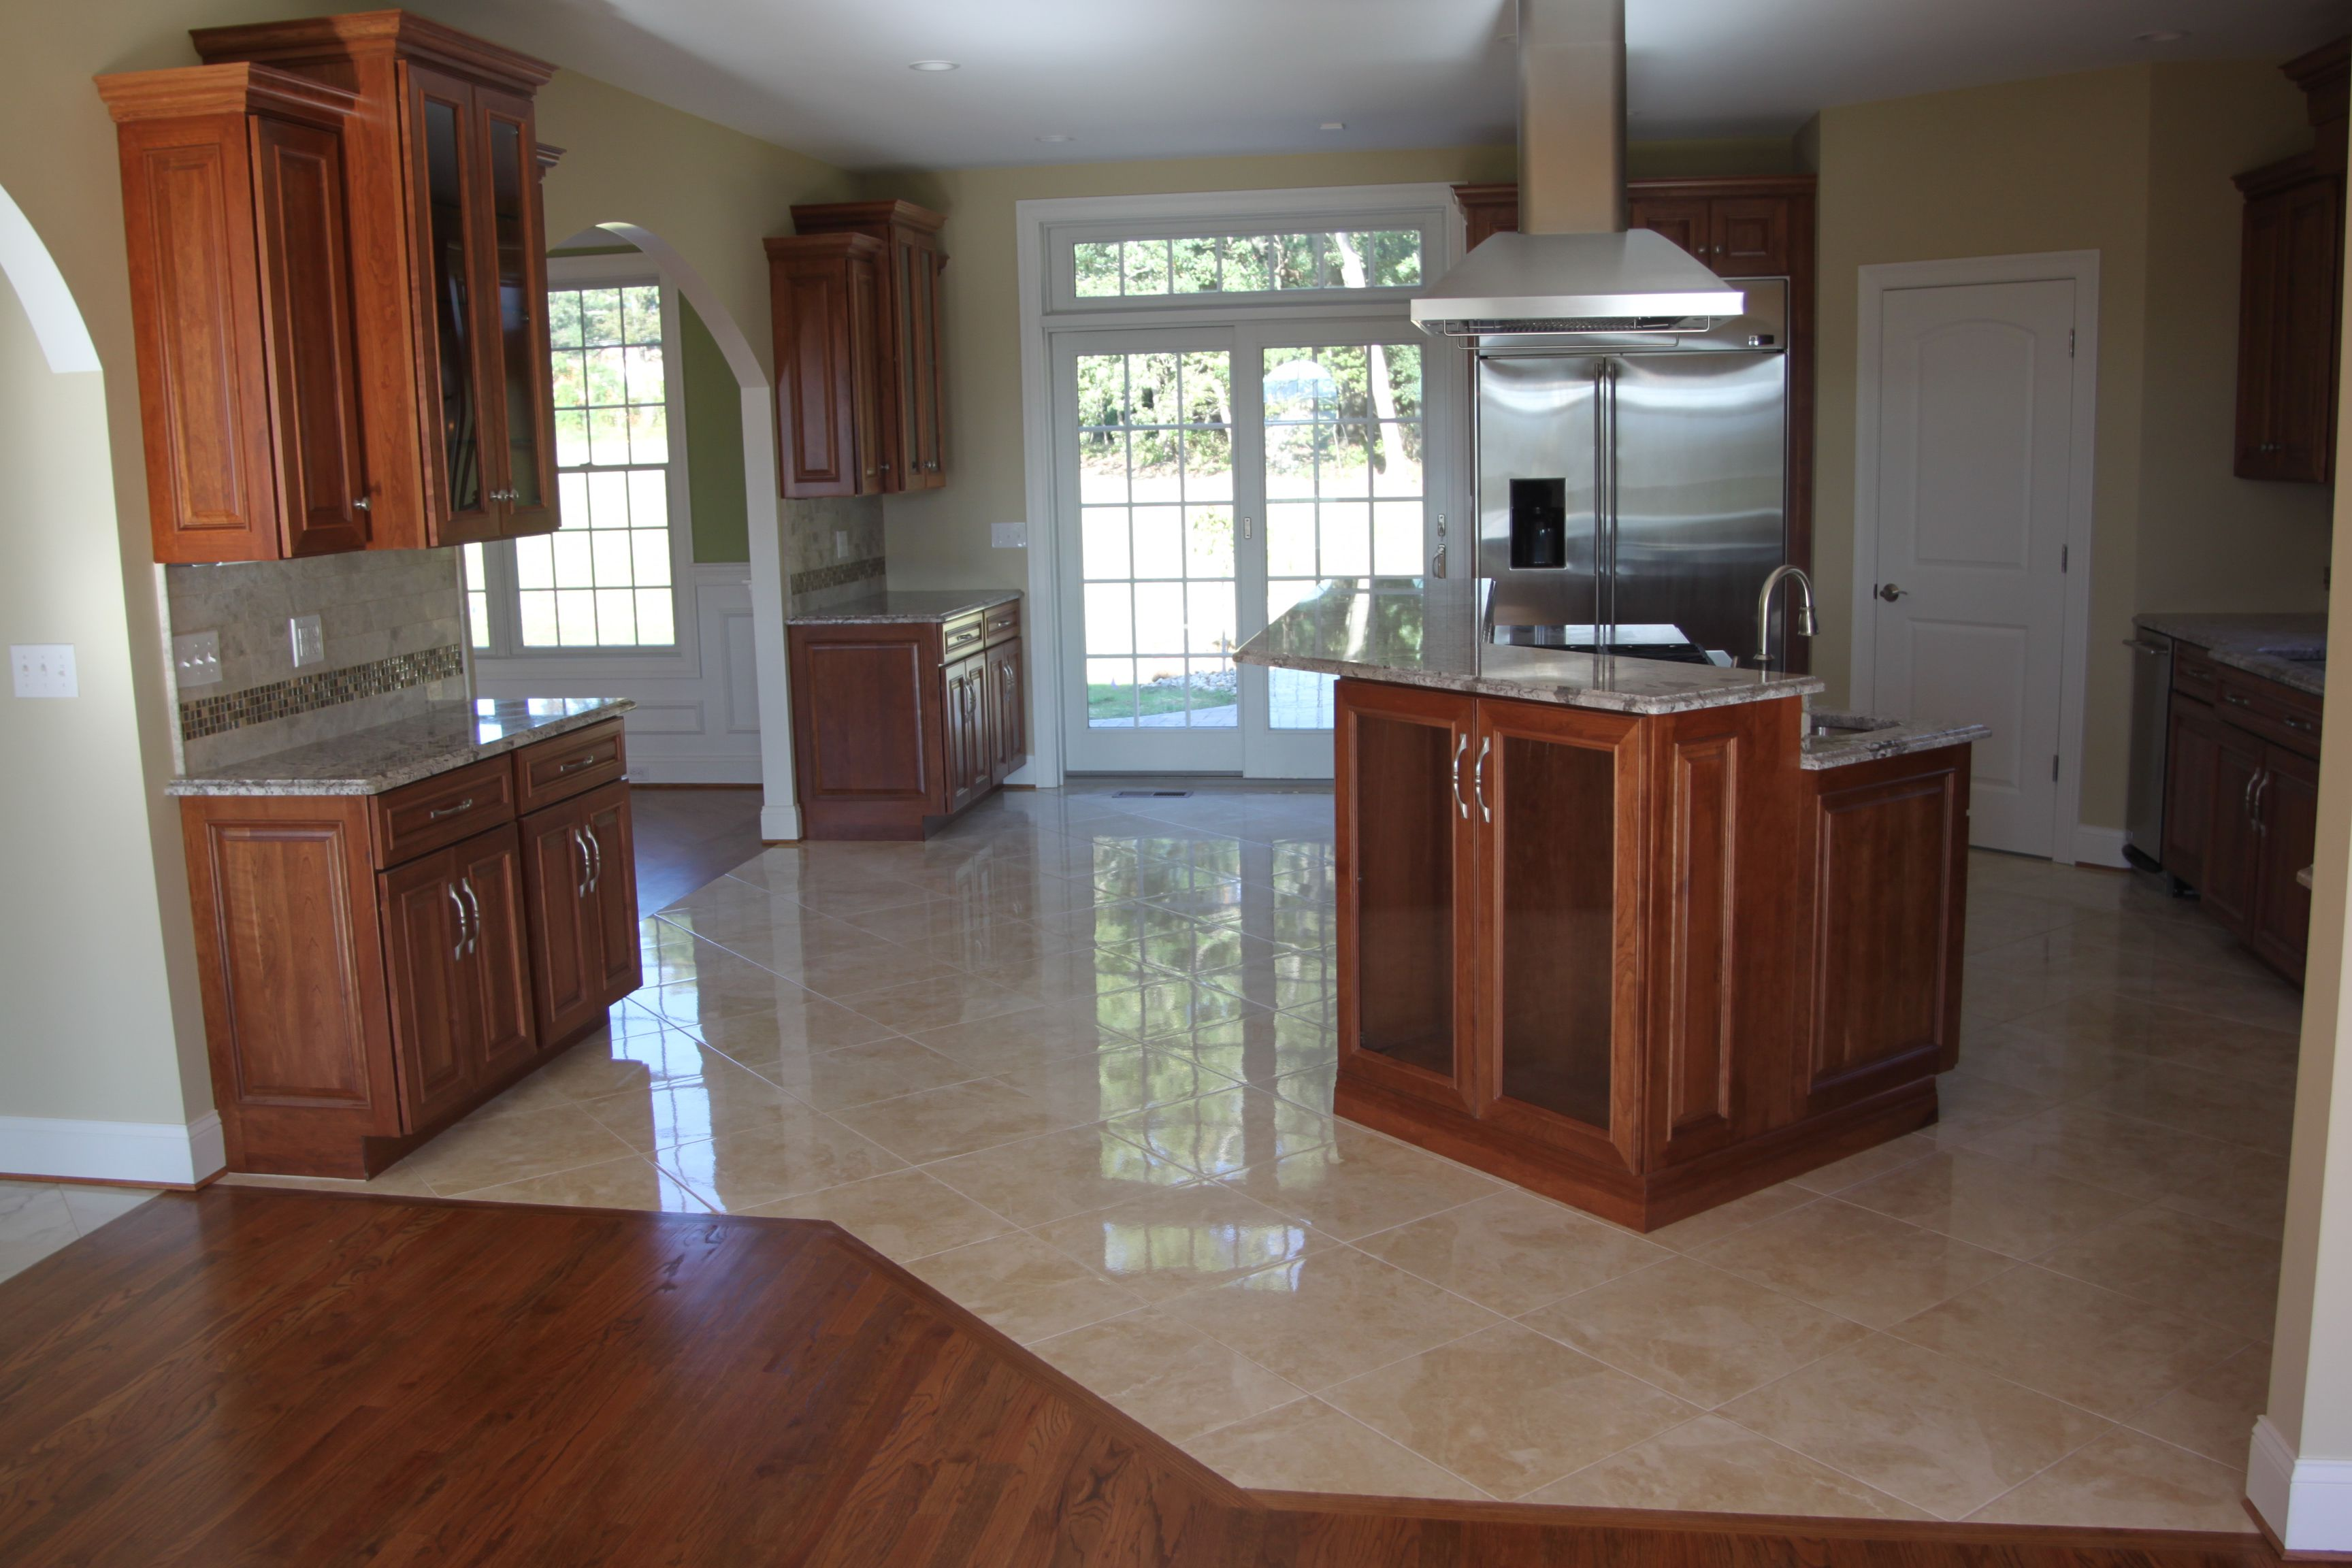 Floor tile designs ideas to enhance your floor appearance for Tiling kitchen floor